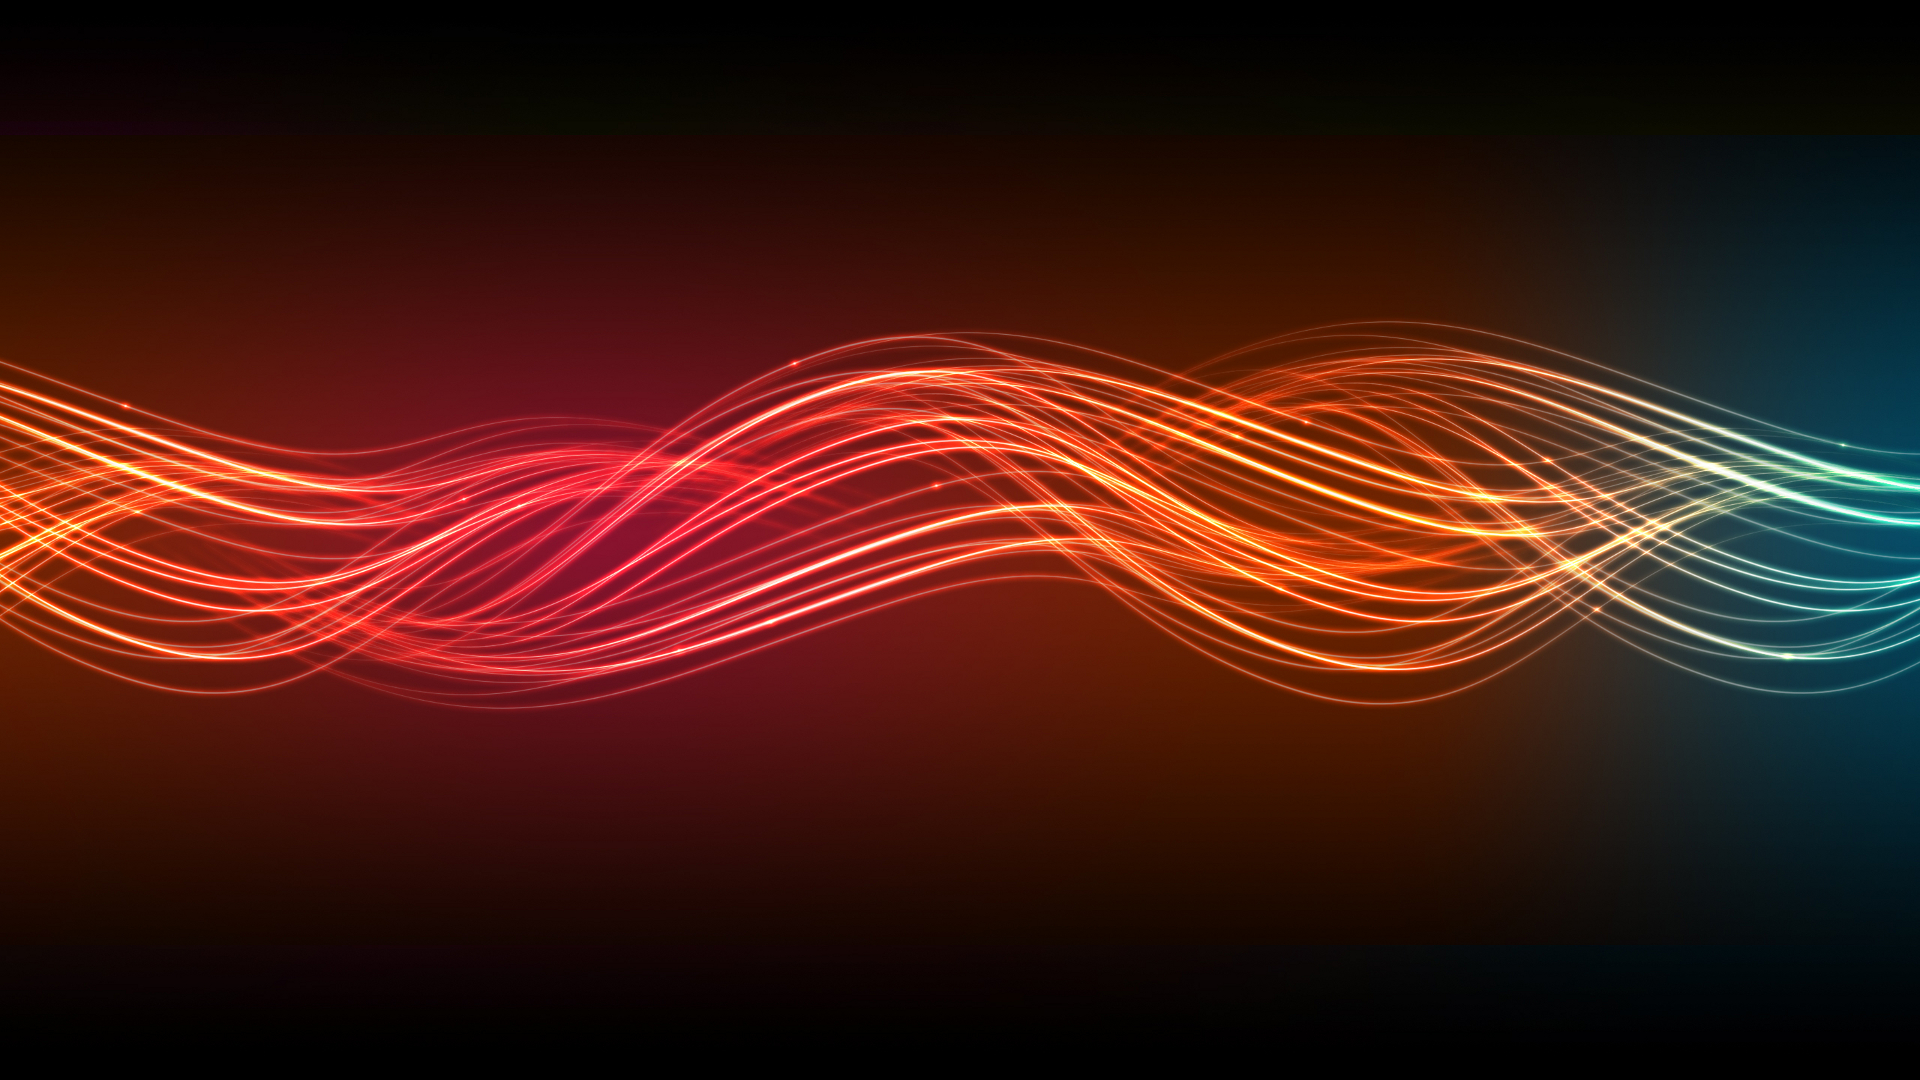 Neon Backgrounds Related Keywords Suggestions   Neon Backgrounds 1920x1080